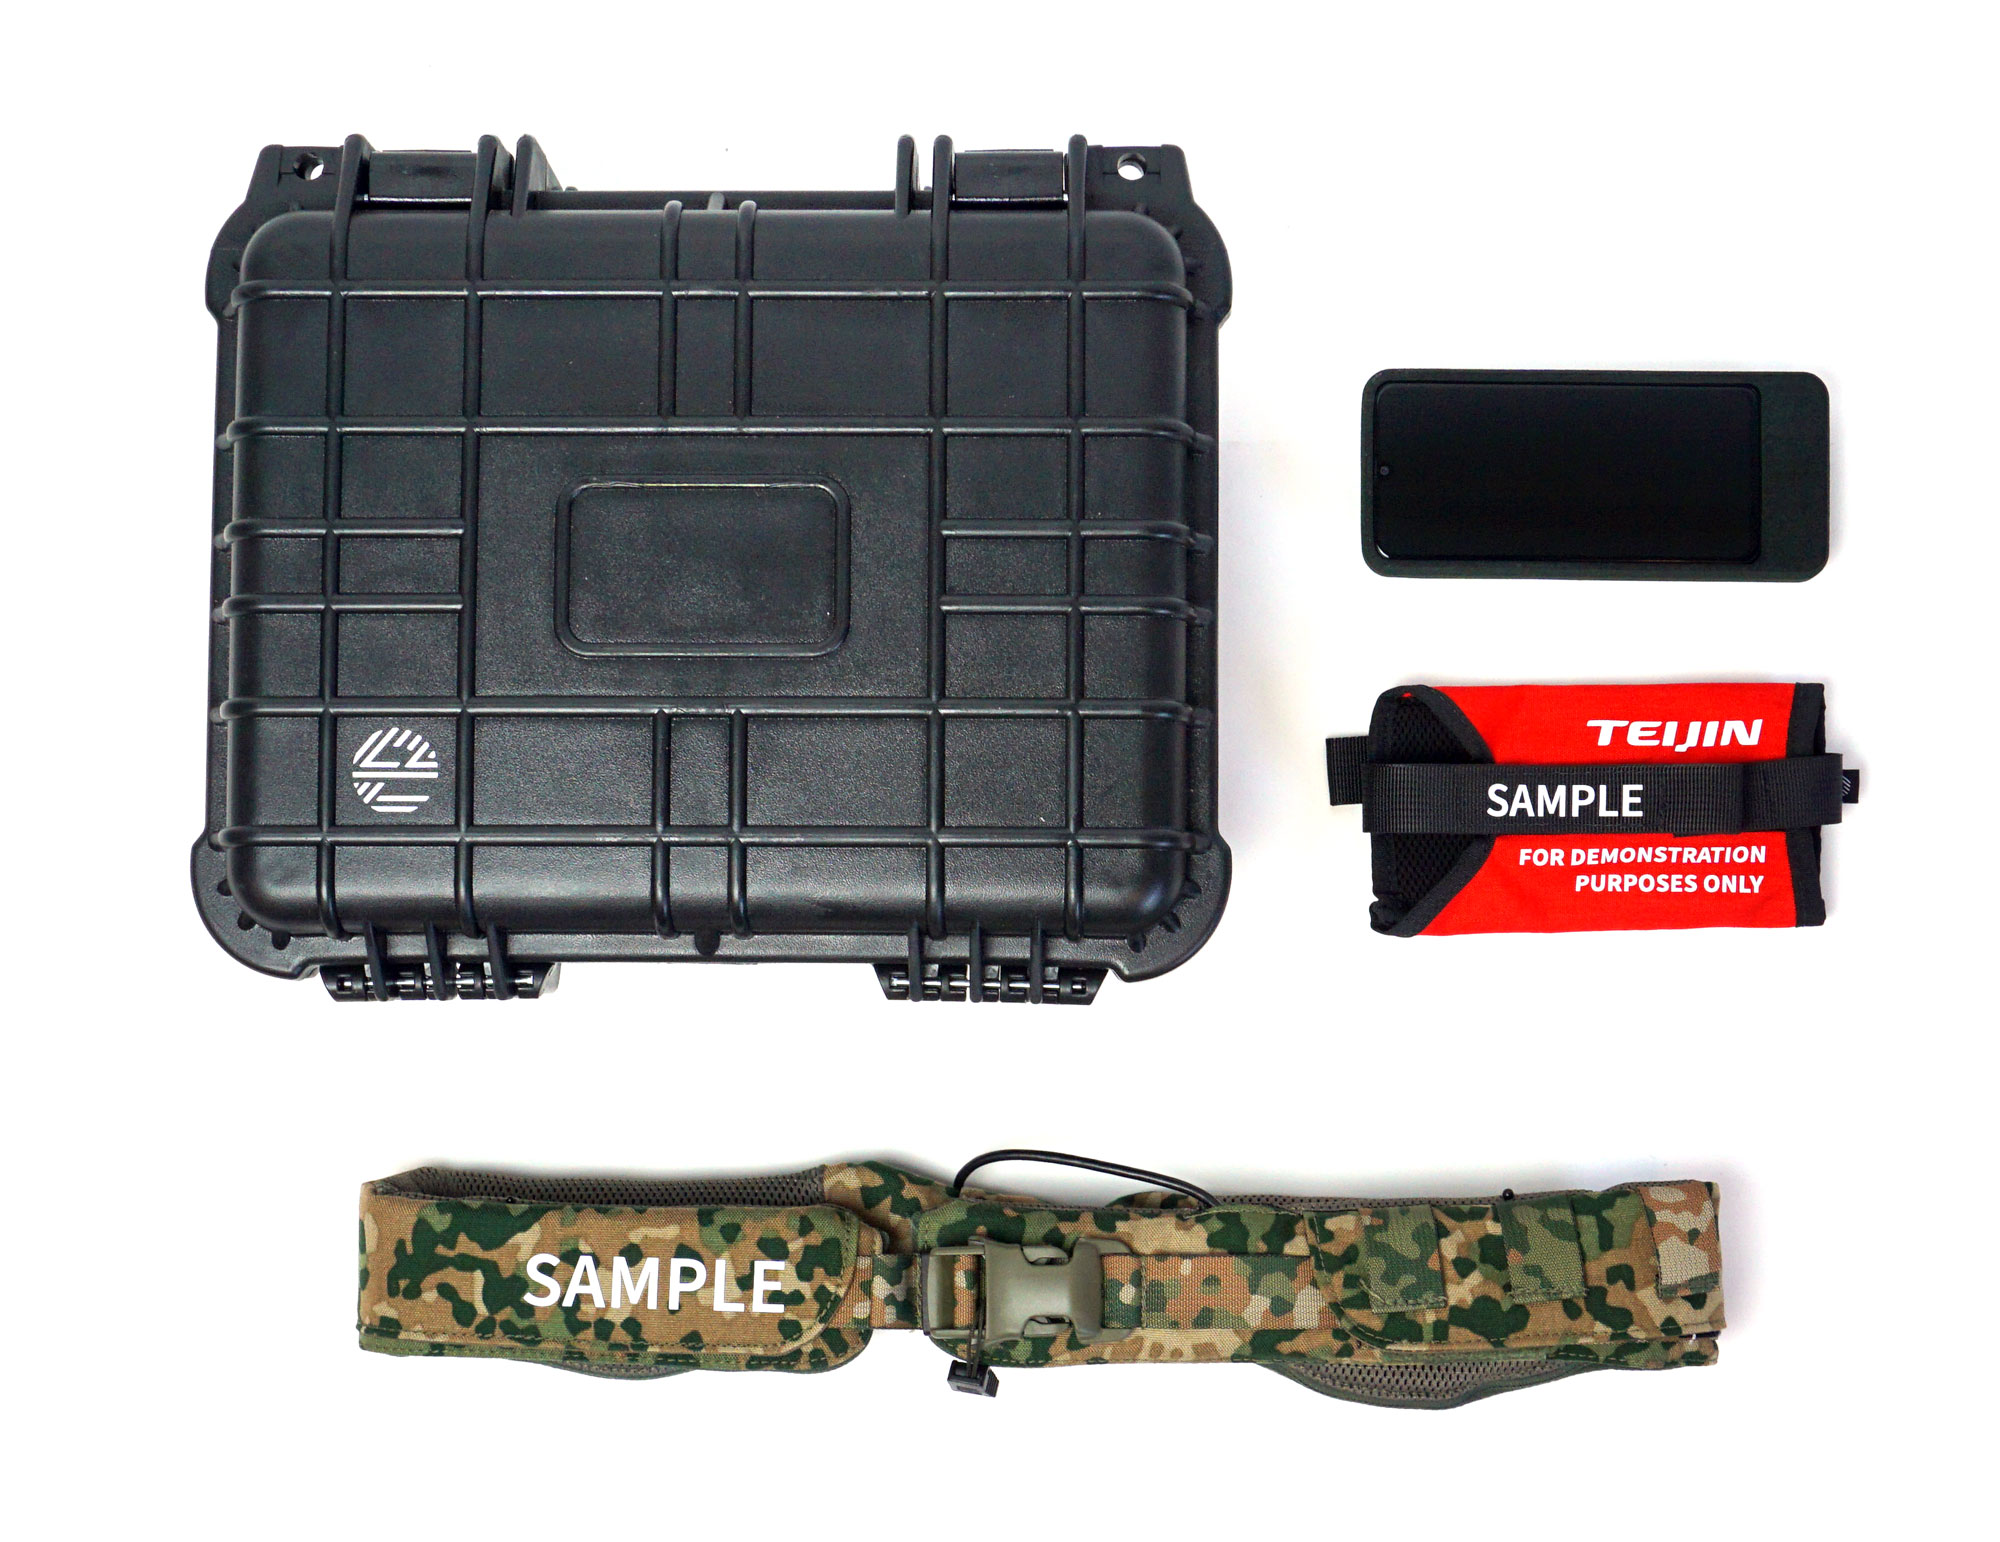 Mission Navigation Belt demo kit: A sturdy box with haptic feedback belt, phone and pouch.